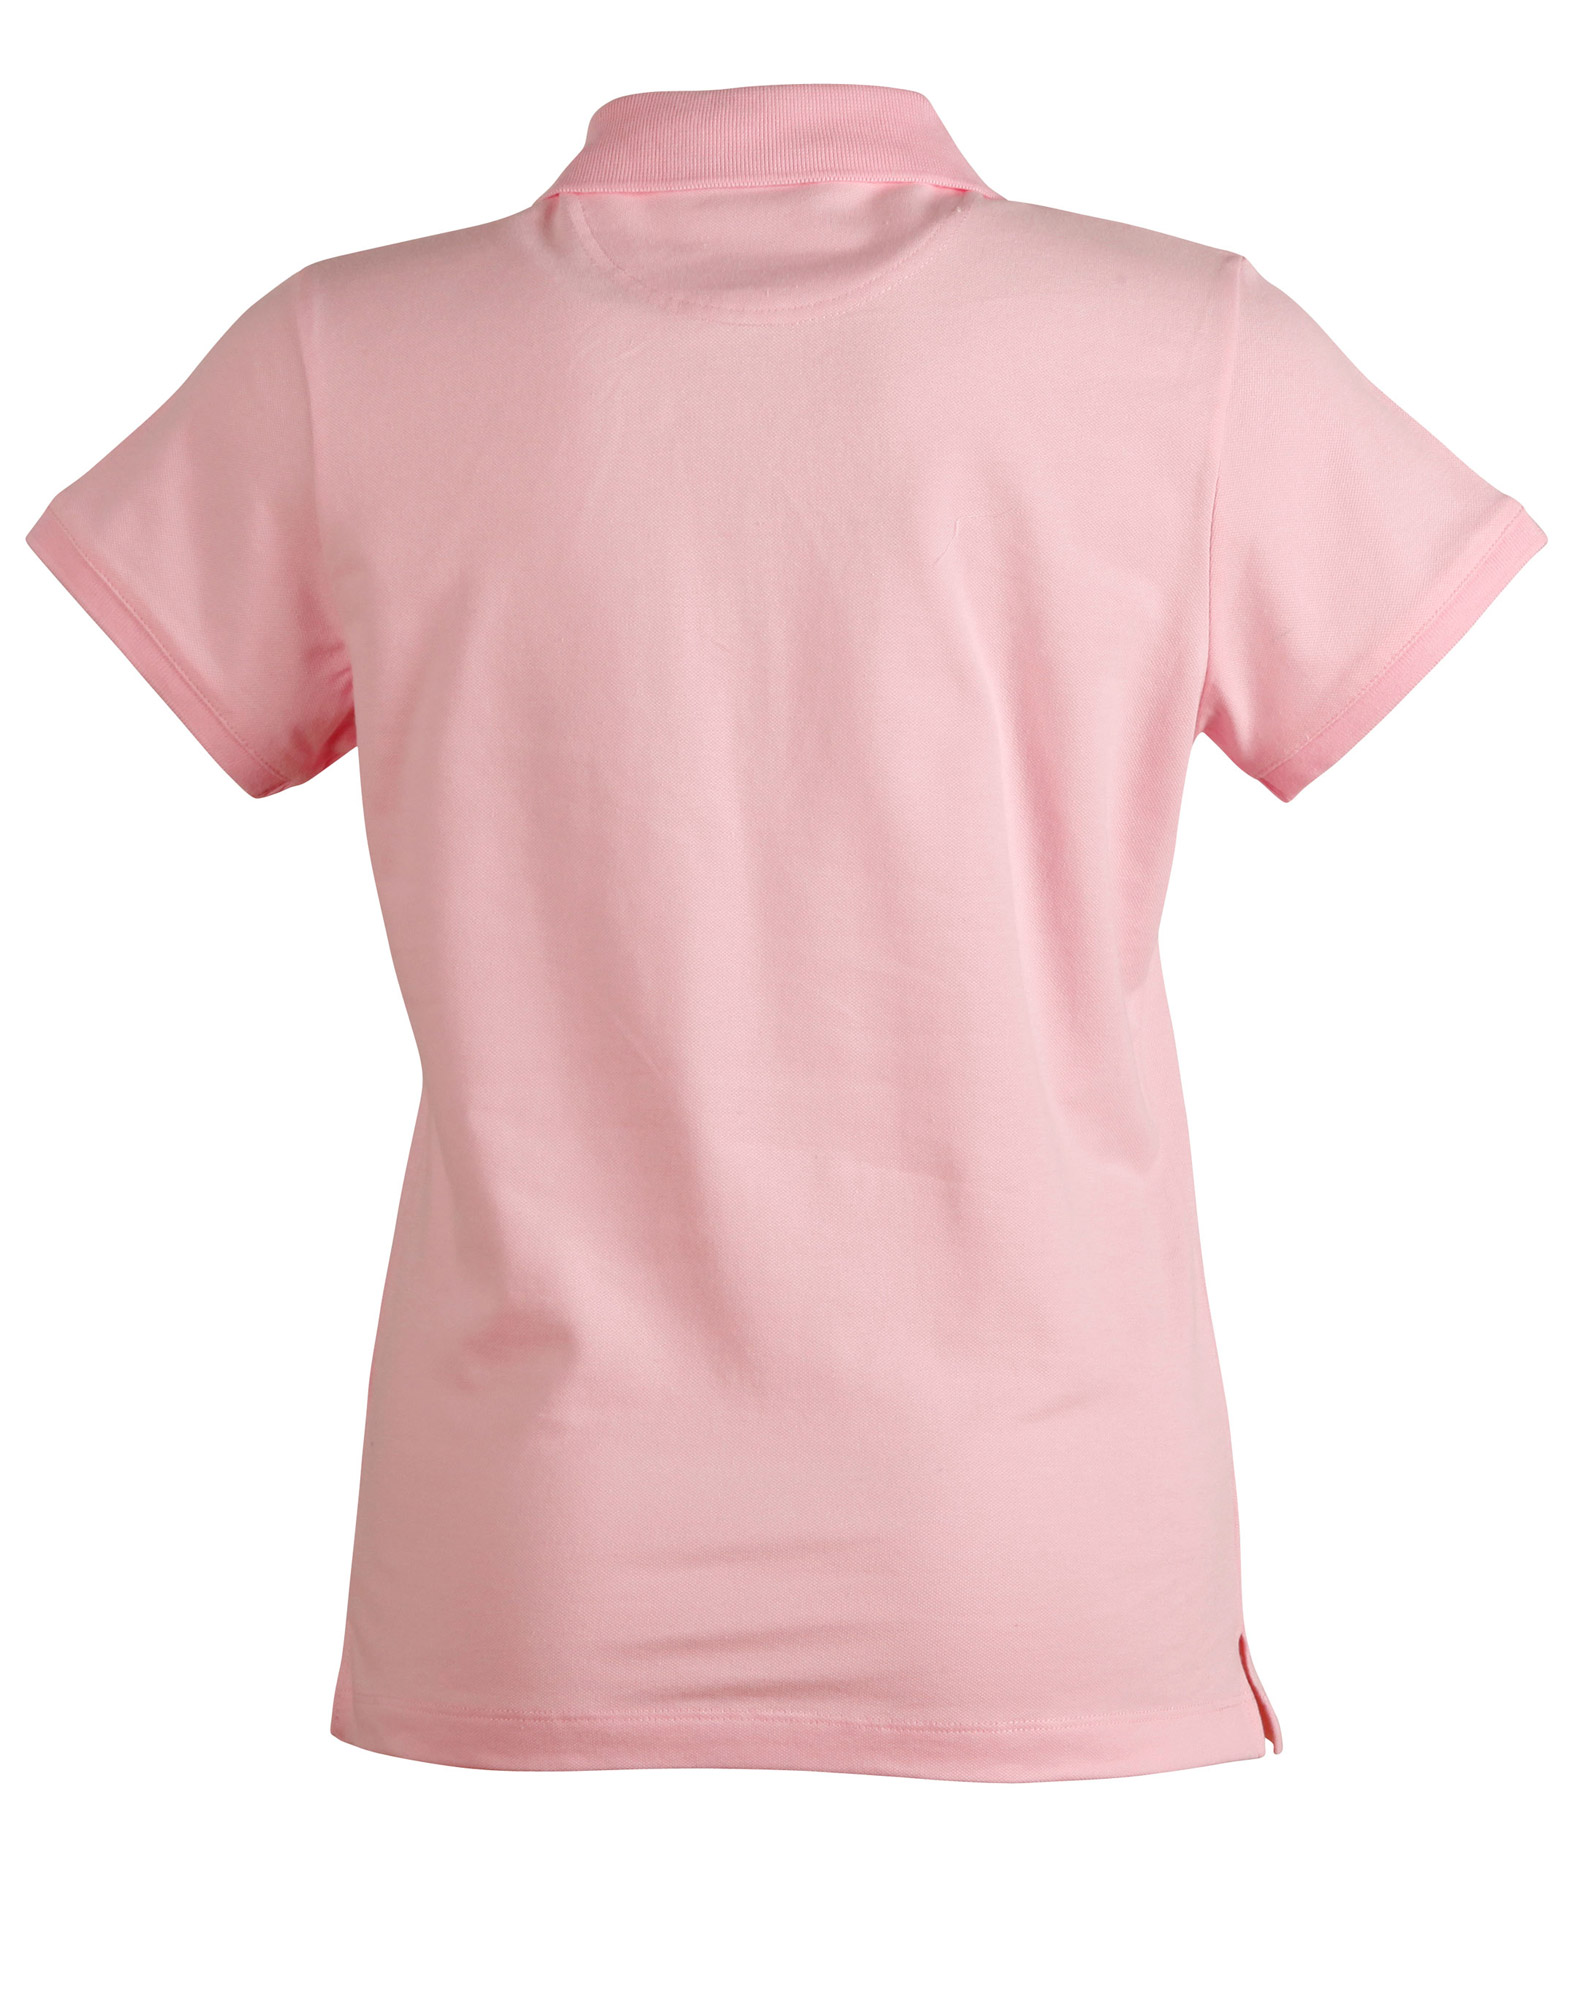 https://s3-ap-southeast-1.amazonaws.com/ws-imgs/POLOSHIRTS/PS56_Pink_Back_l.jpg